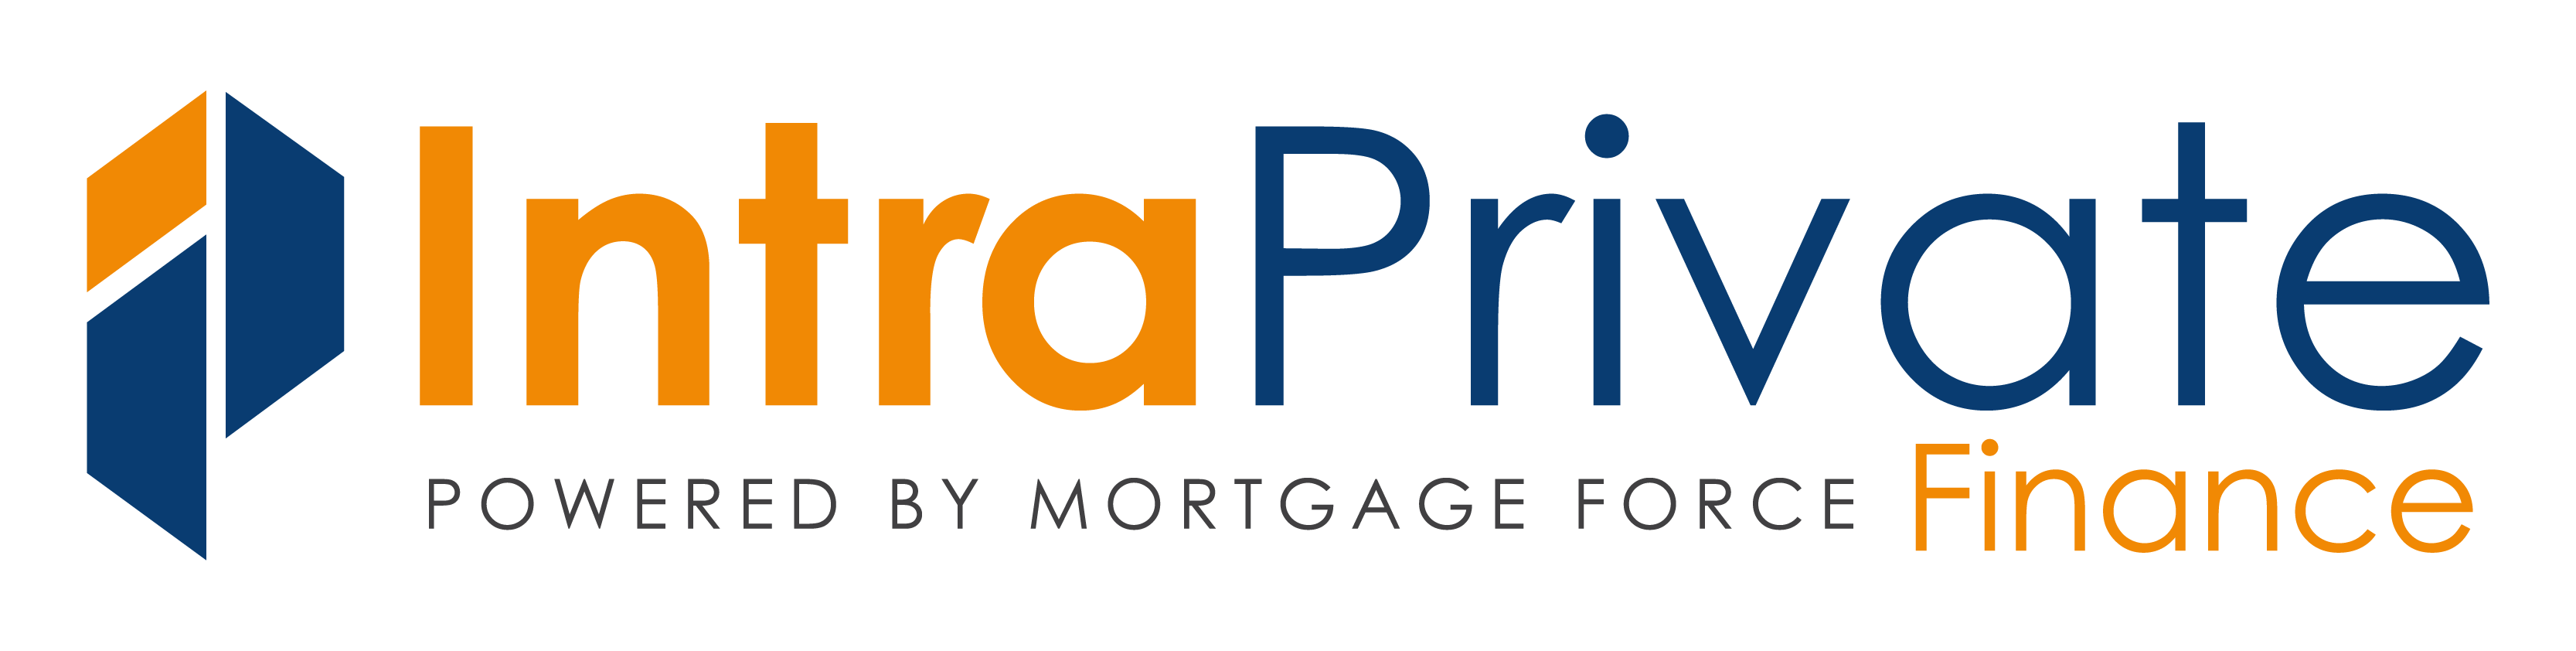 Intra Private Finance